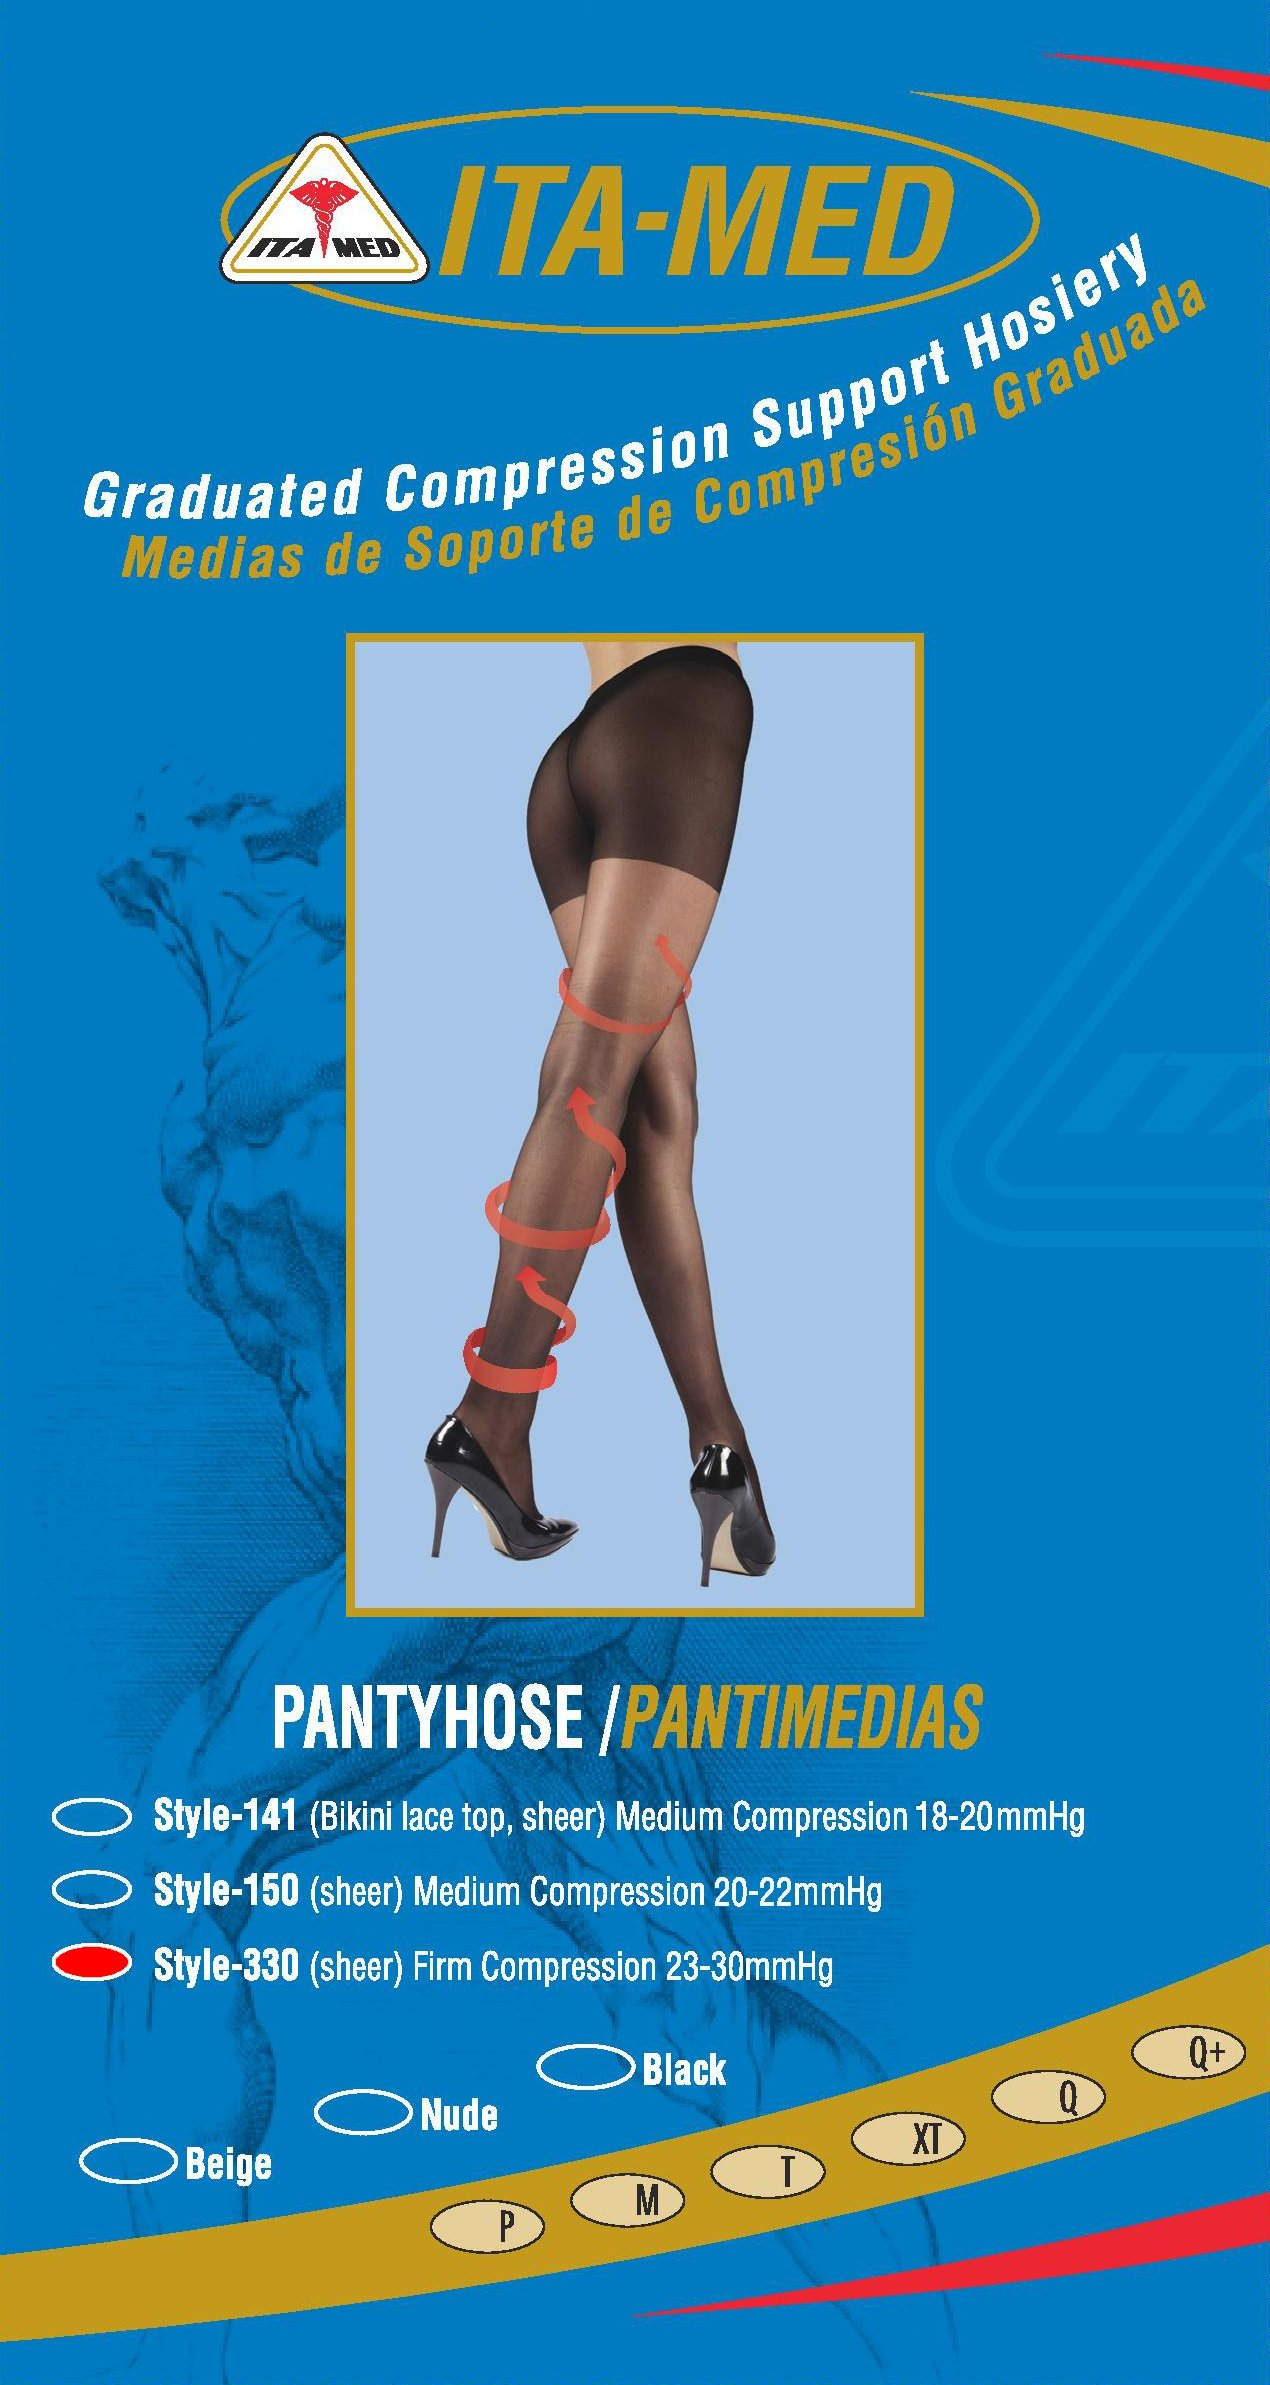 ITA-MED Sheer Pantyhose Compression, Mixed, Queen Plus, 3 Count by ITA-MED